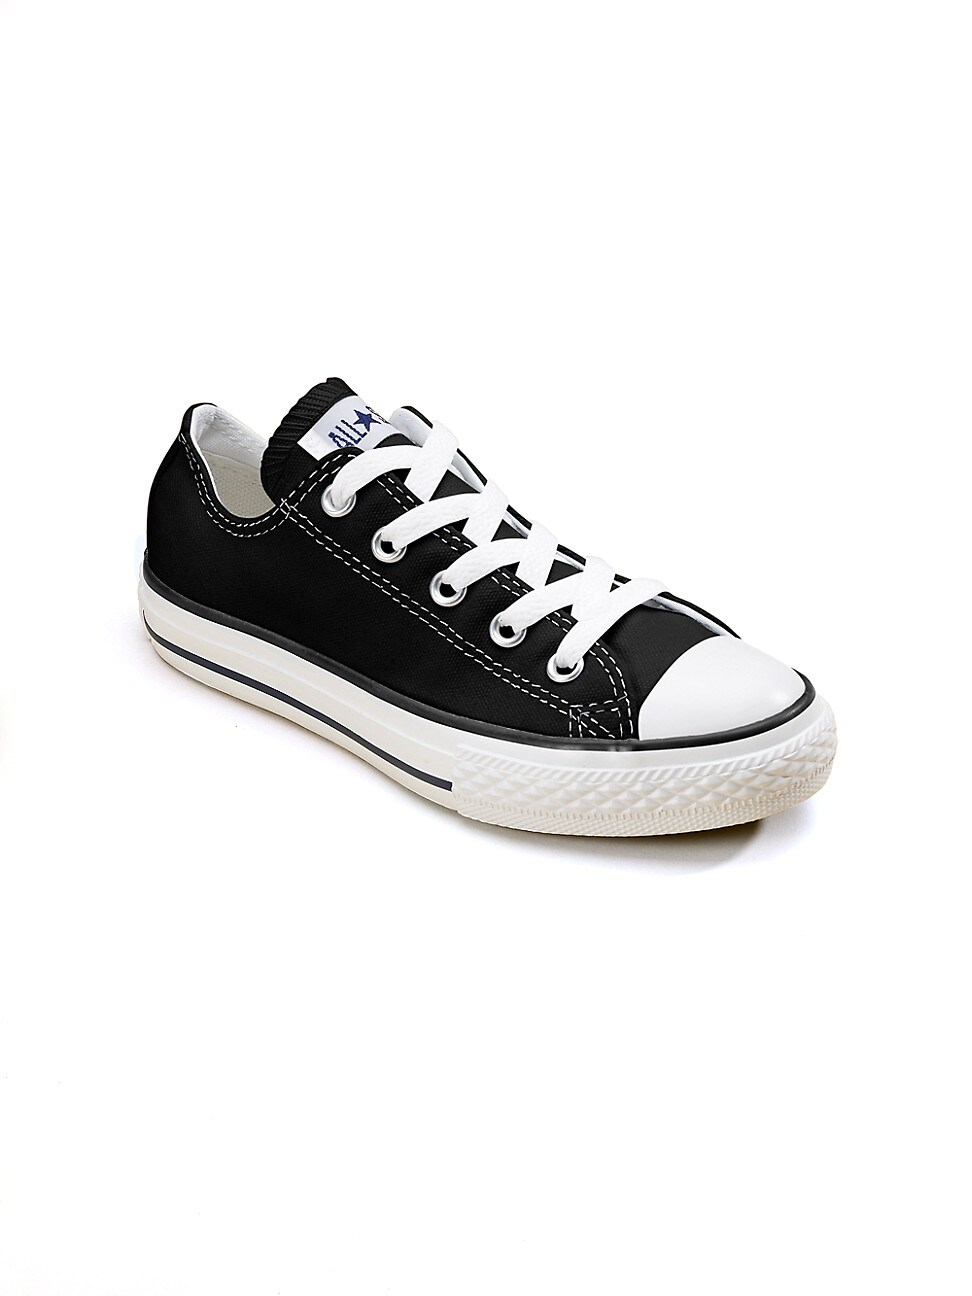 CONVERSE KID'S CHUCK TAYLOR ALL STAR LACE-UP SNEAKERS